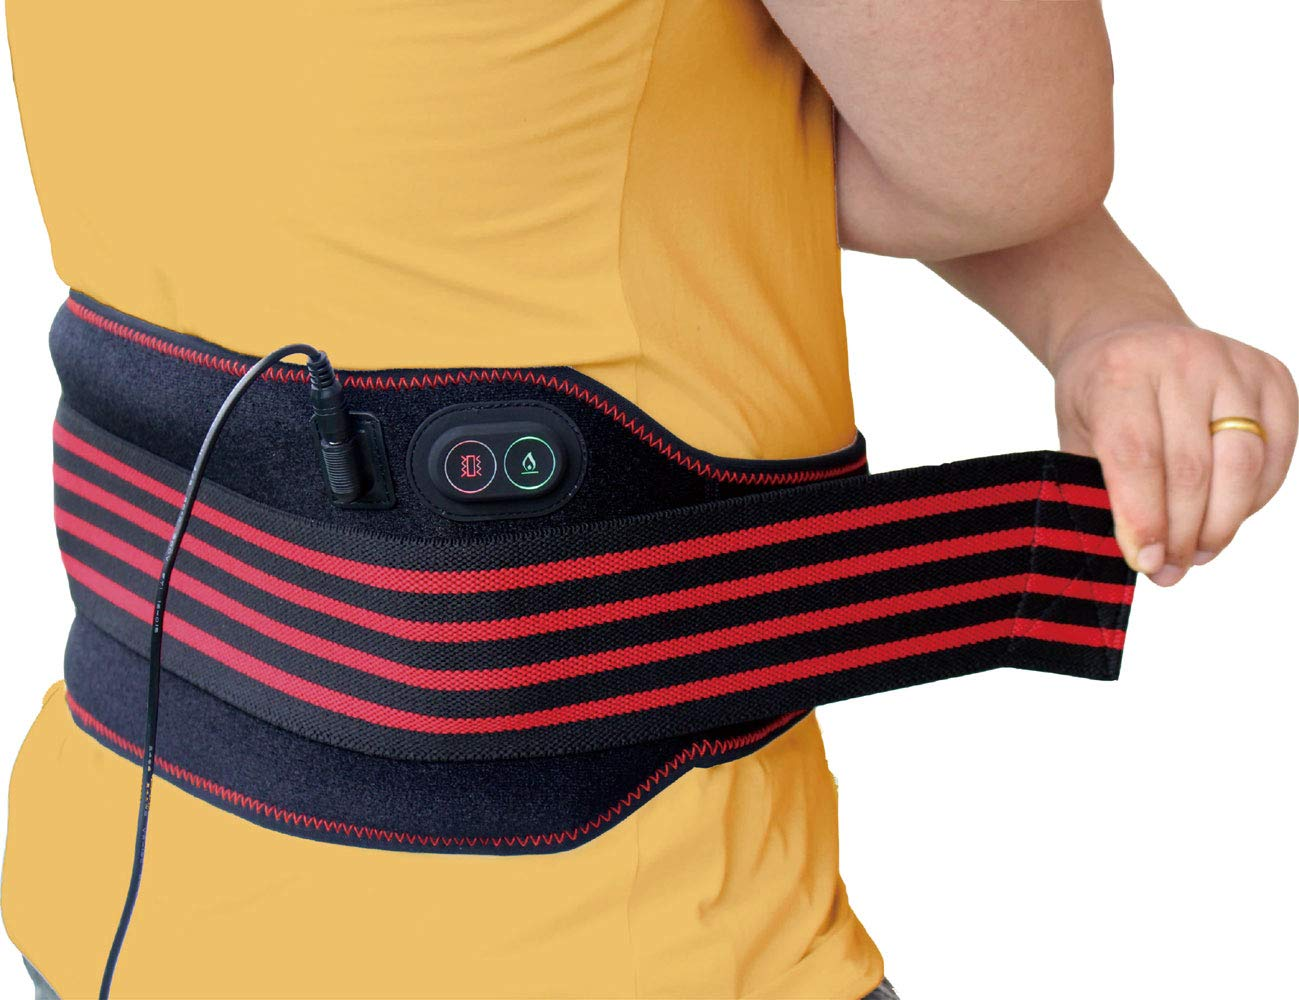 sticro Lower Back Massage Heating Pad Belt, 3 Temperature & Vibration Setting Heated Waist Therapy Wrap for Pain Relief of Abdominal Stomach Lumbar Muscle Strain, Menstrual Cramps